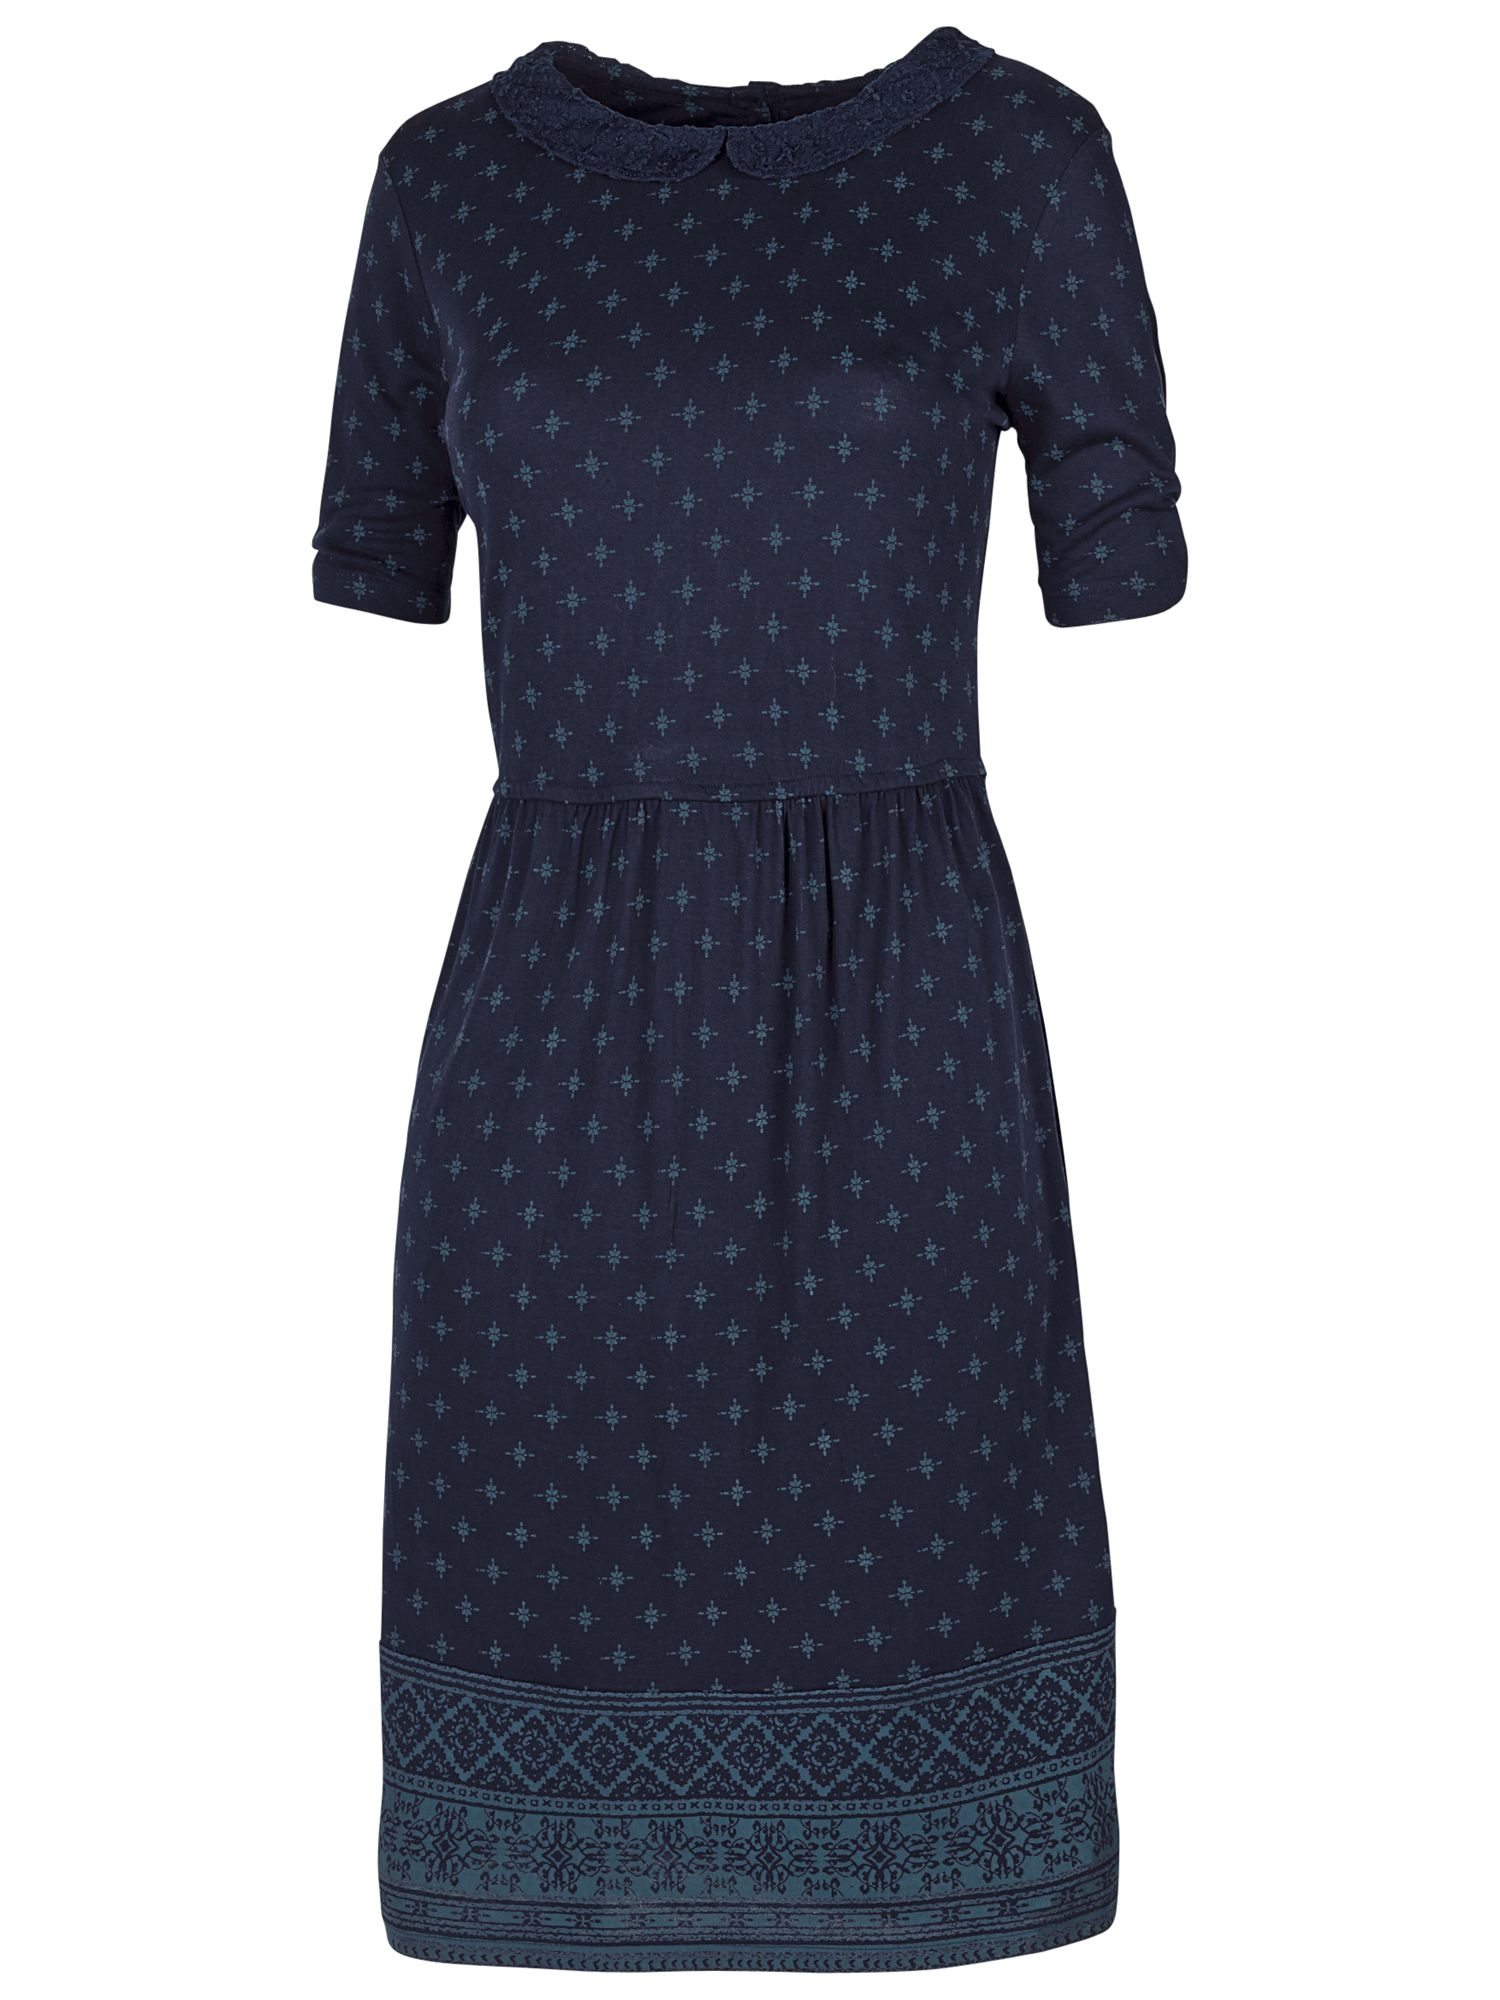 fat face lace collar woodblock dress navy, fat, face, lace, collar, woodblock, dress, navy, fat face, clearance, womenswear offers, womens dresses offers, women, brands a-k, inactive womenswear, womens dresses, special offers, 1783153